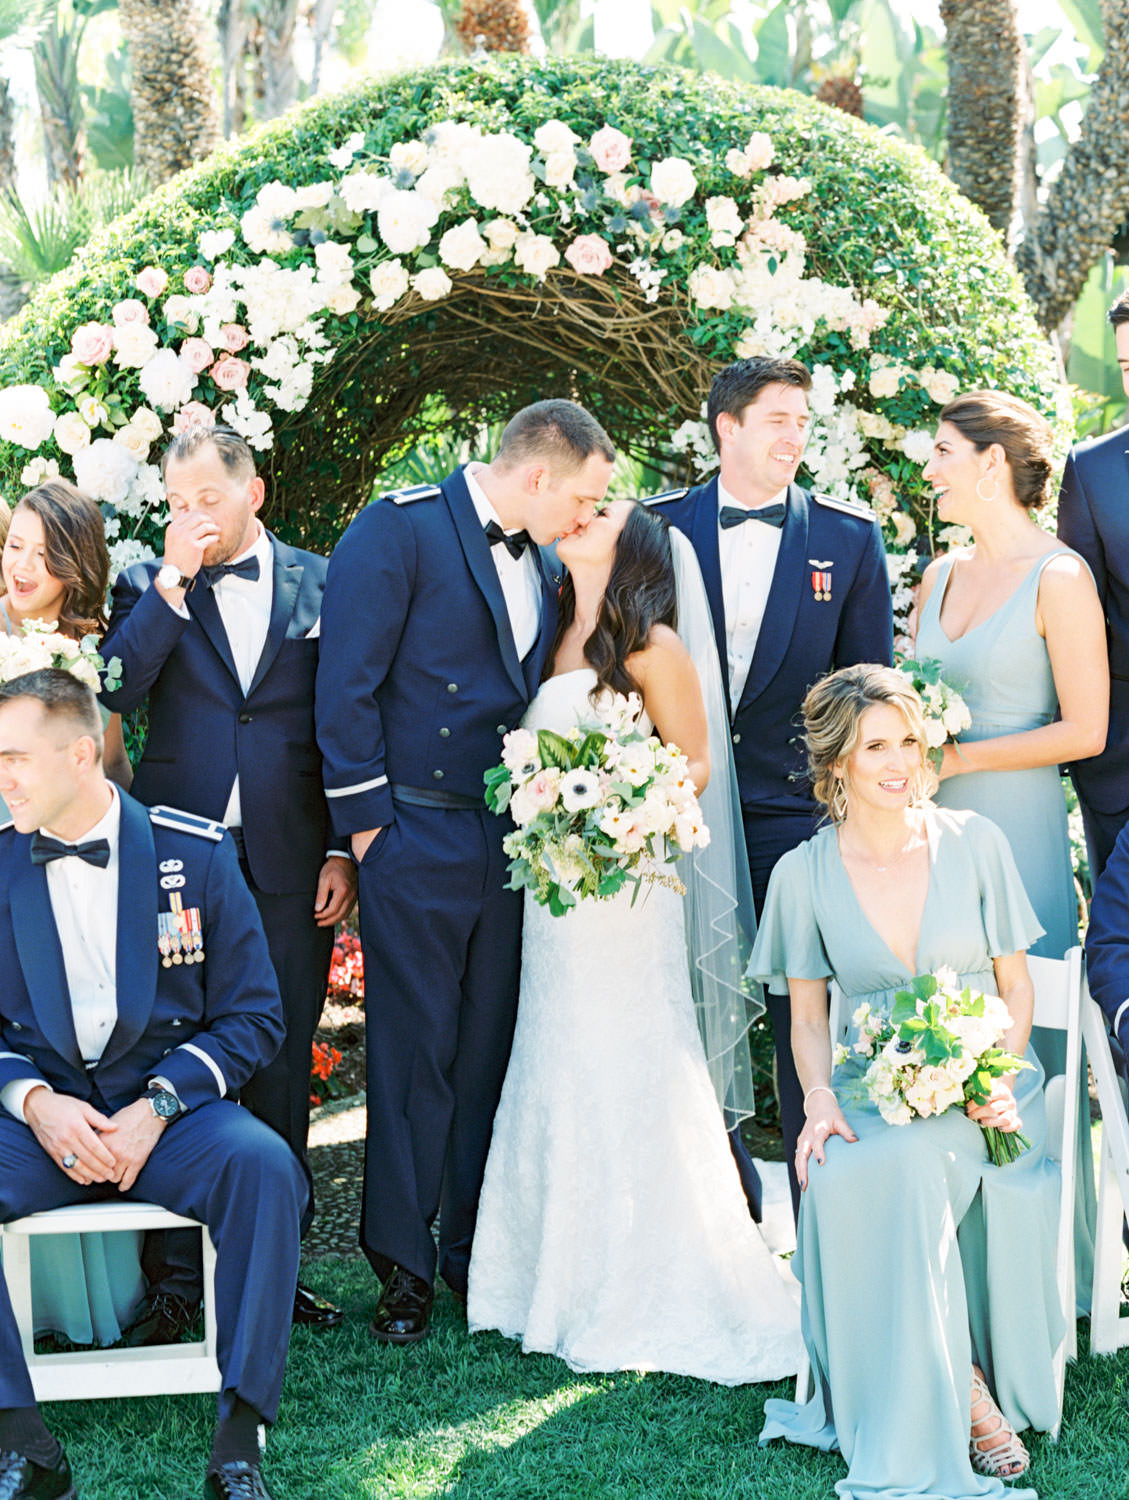 Bridesmaids in french blue dressed and bride in strapless lace gown with groom and groomsmen in air force tuxedos. Bouquets with anemones, greenery, ivory, and blush flowers in front of a large floral arch captured on film. Wedding at Humphreys Half Moon Inn by Cavin Elizabeth Photography